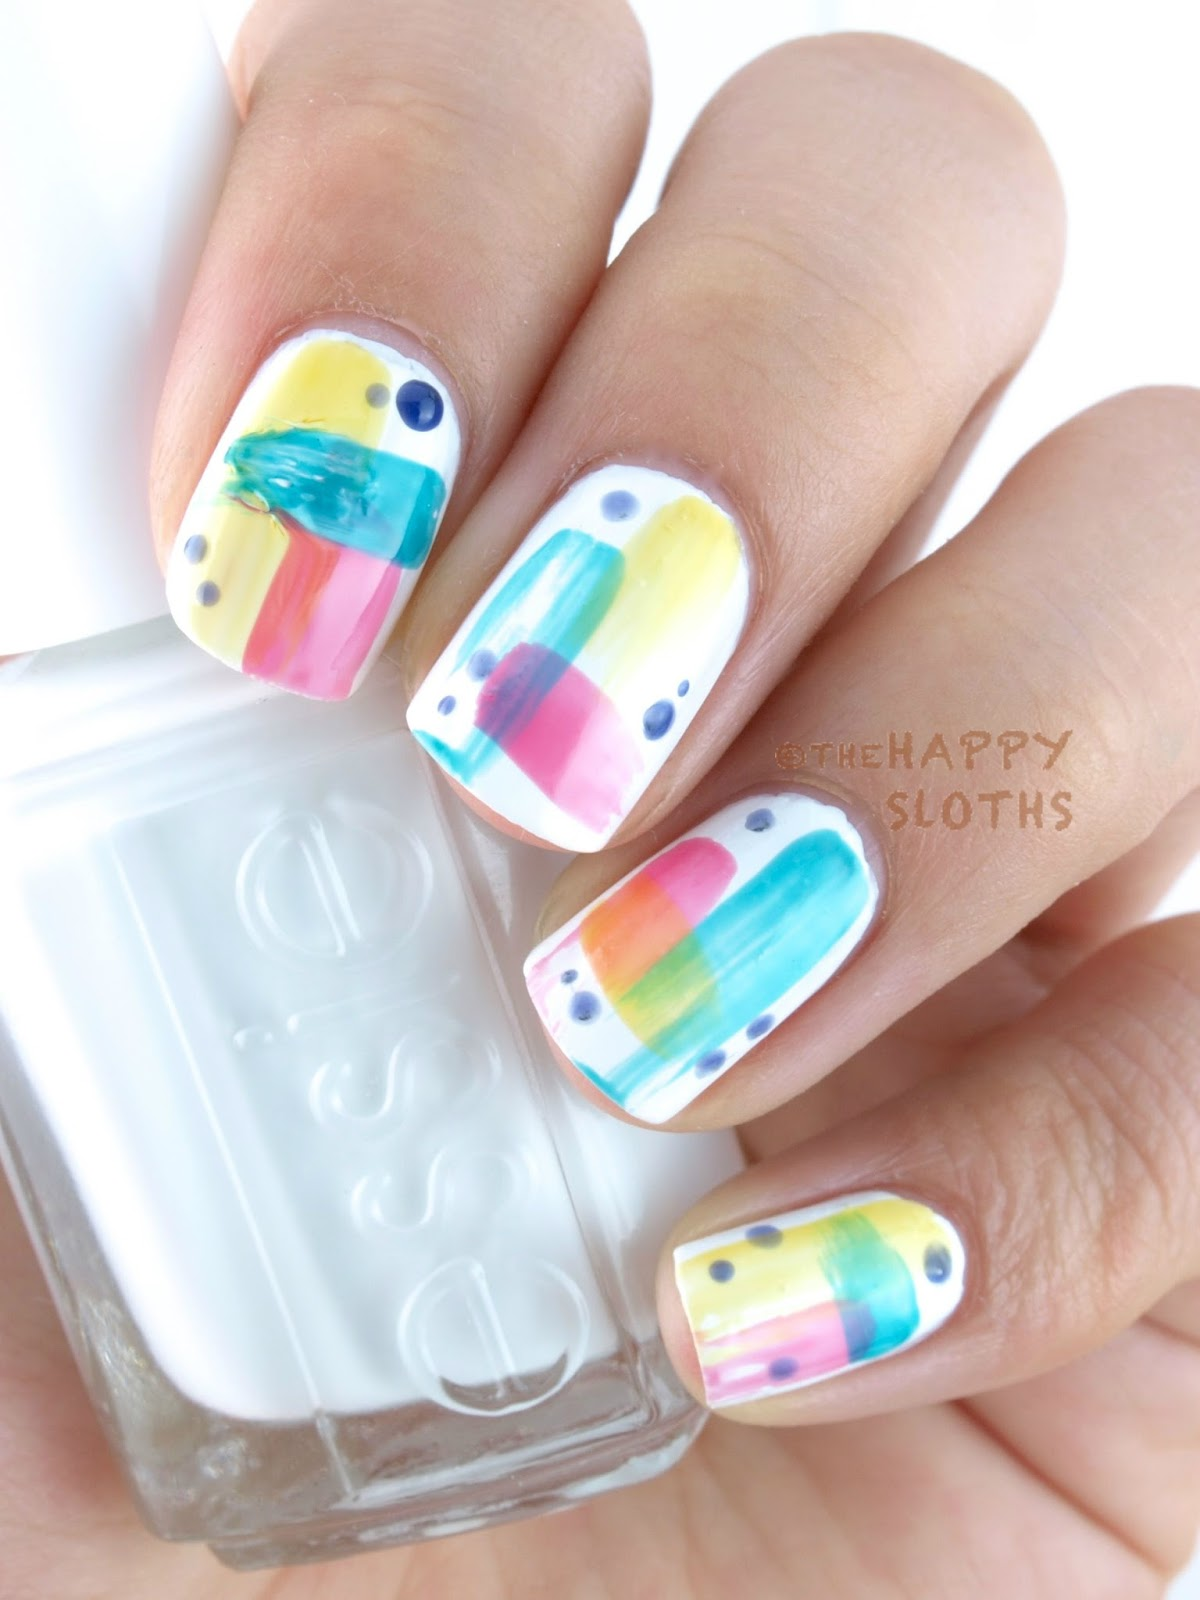 Essie Silk Watercolor Swatches - Worksheet & Coloring Pages